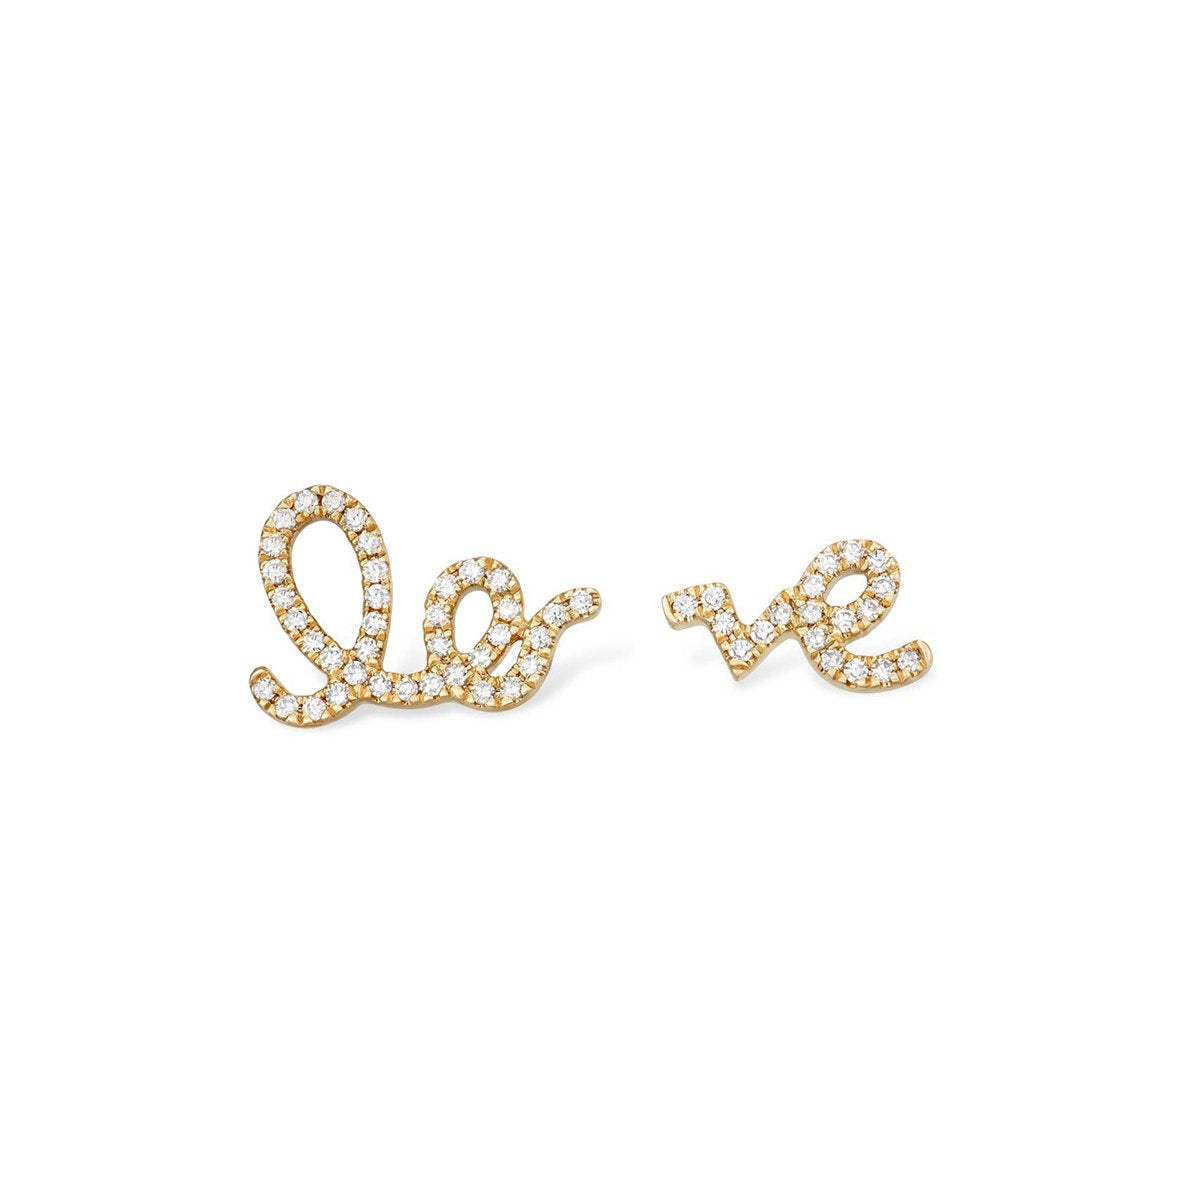 LO-VE Earrings - Serena Williams Jewelry